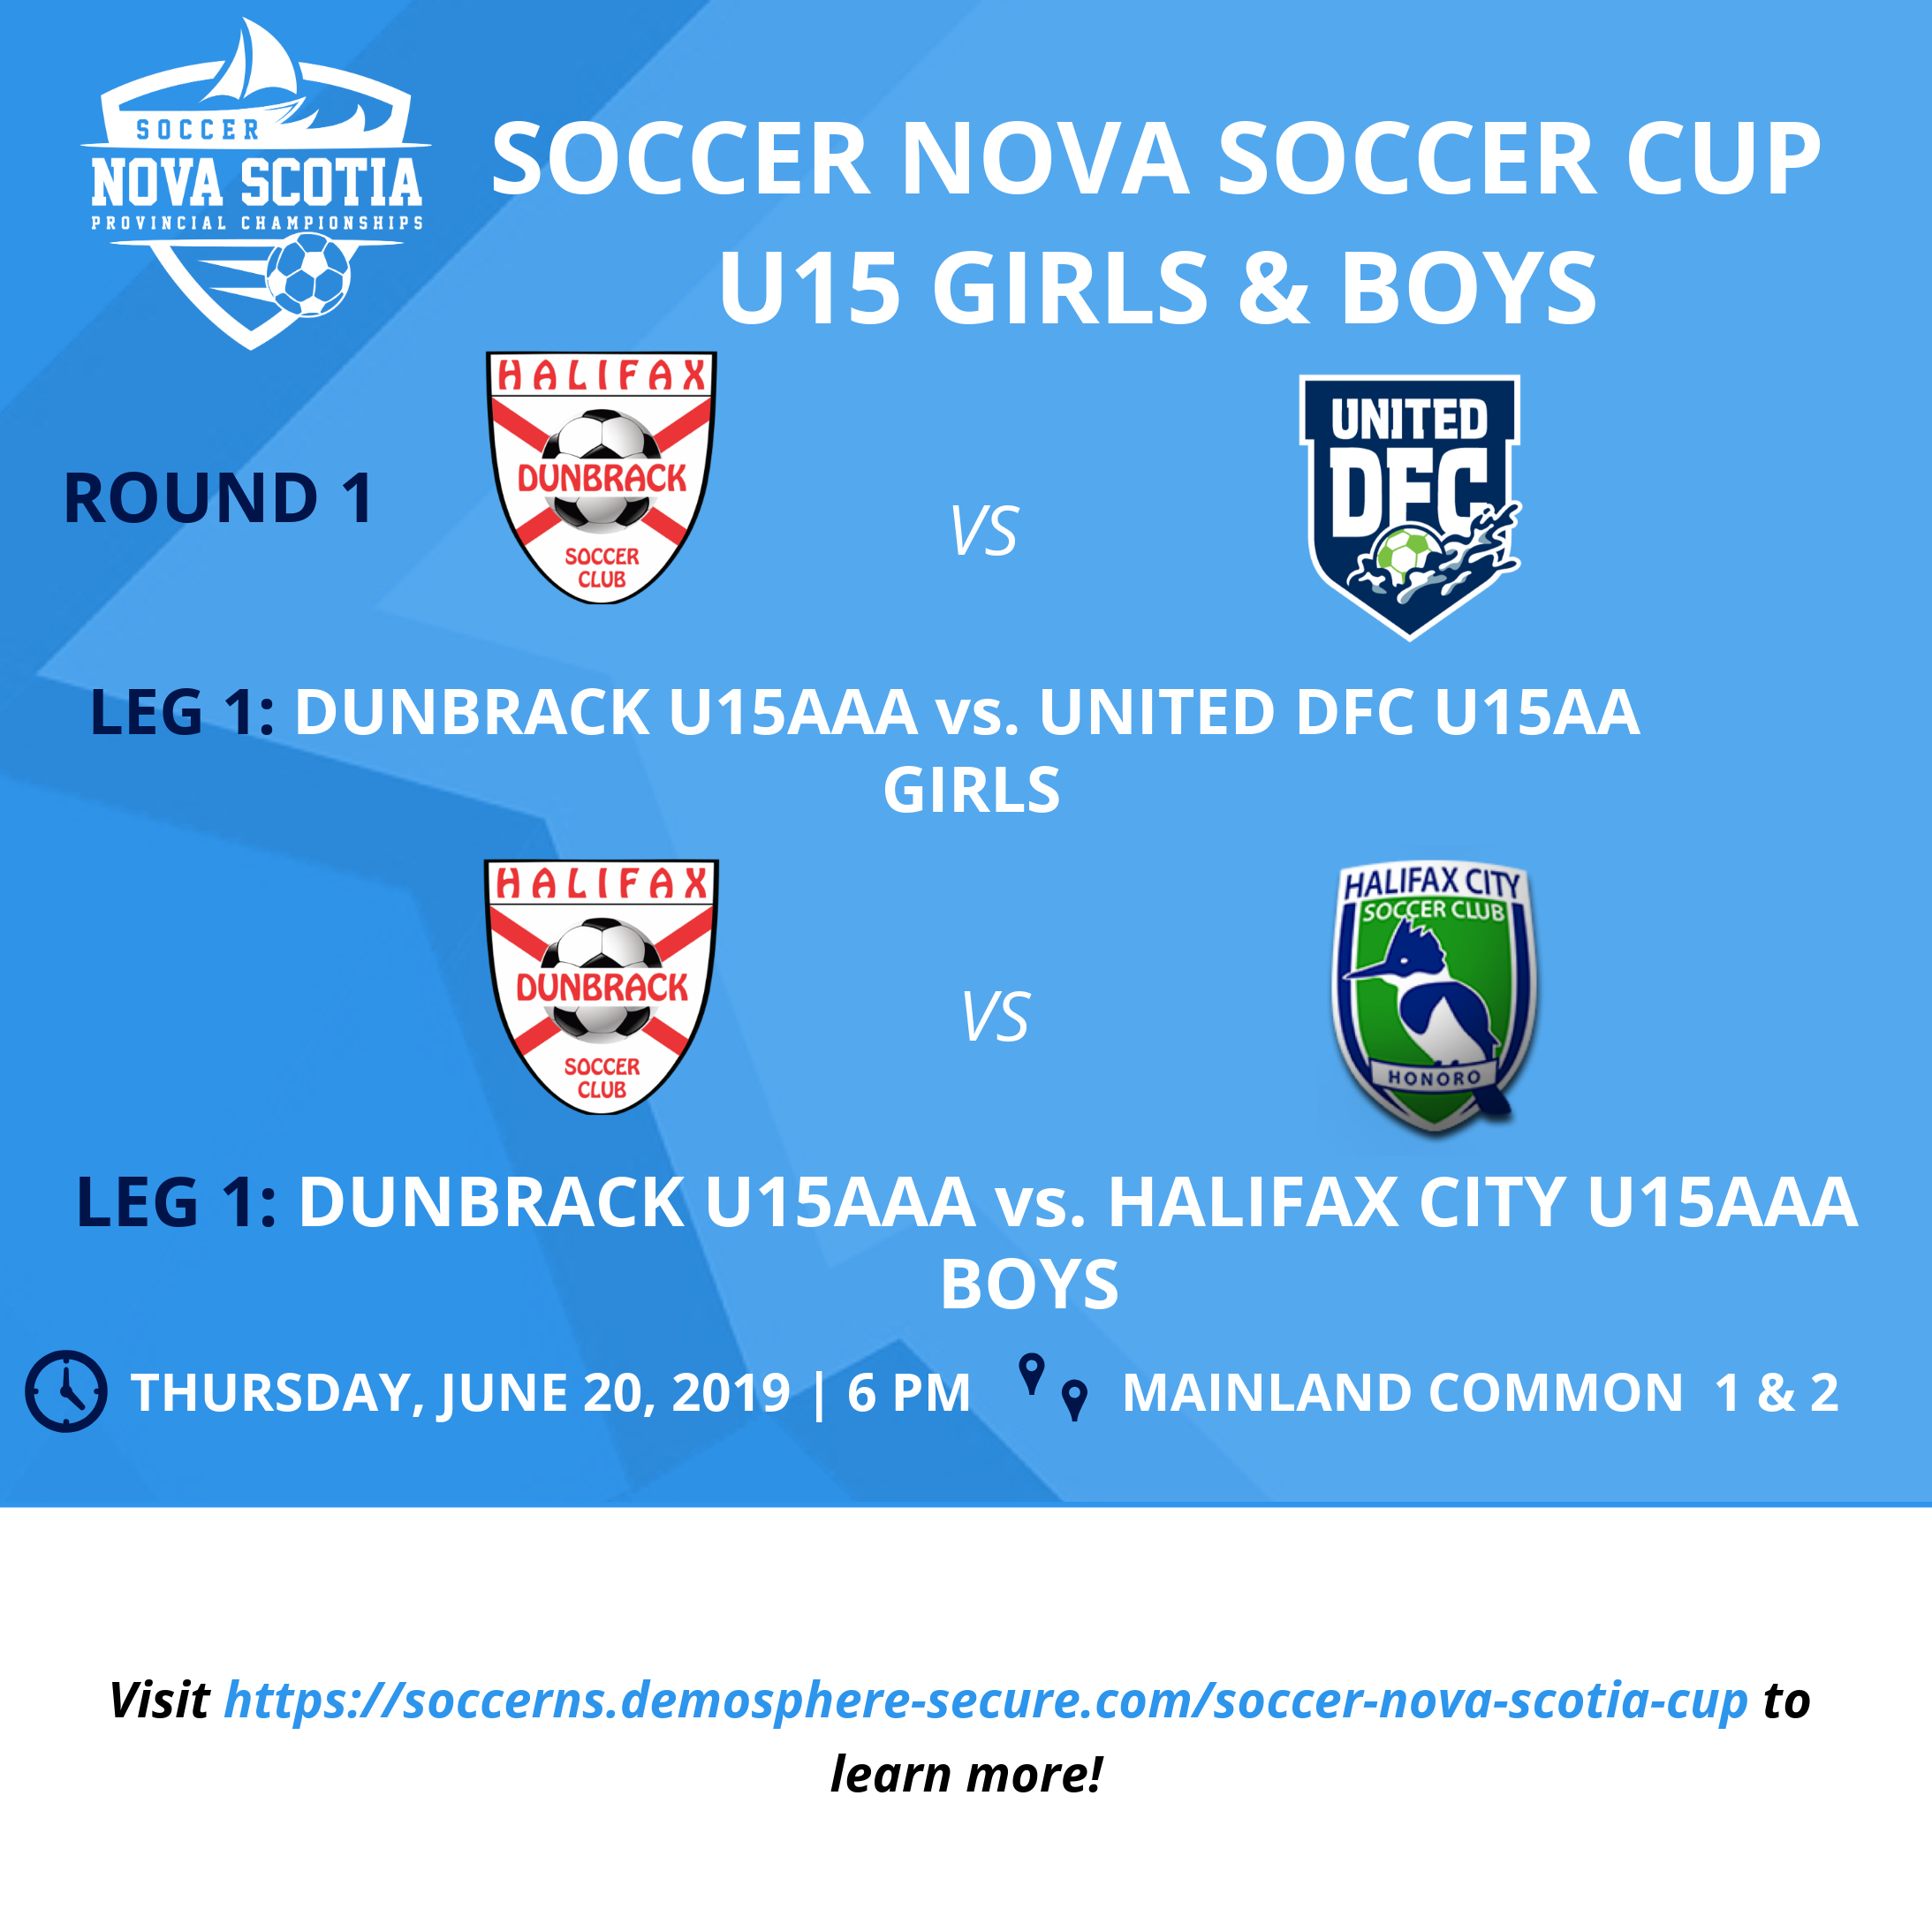 Day 2 of our 2019 Cup Competition with ROUND 1, LEG 1 for our U15 Boys & Girls